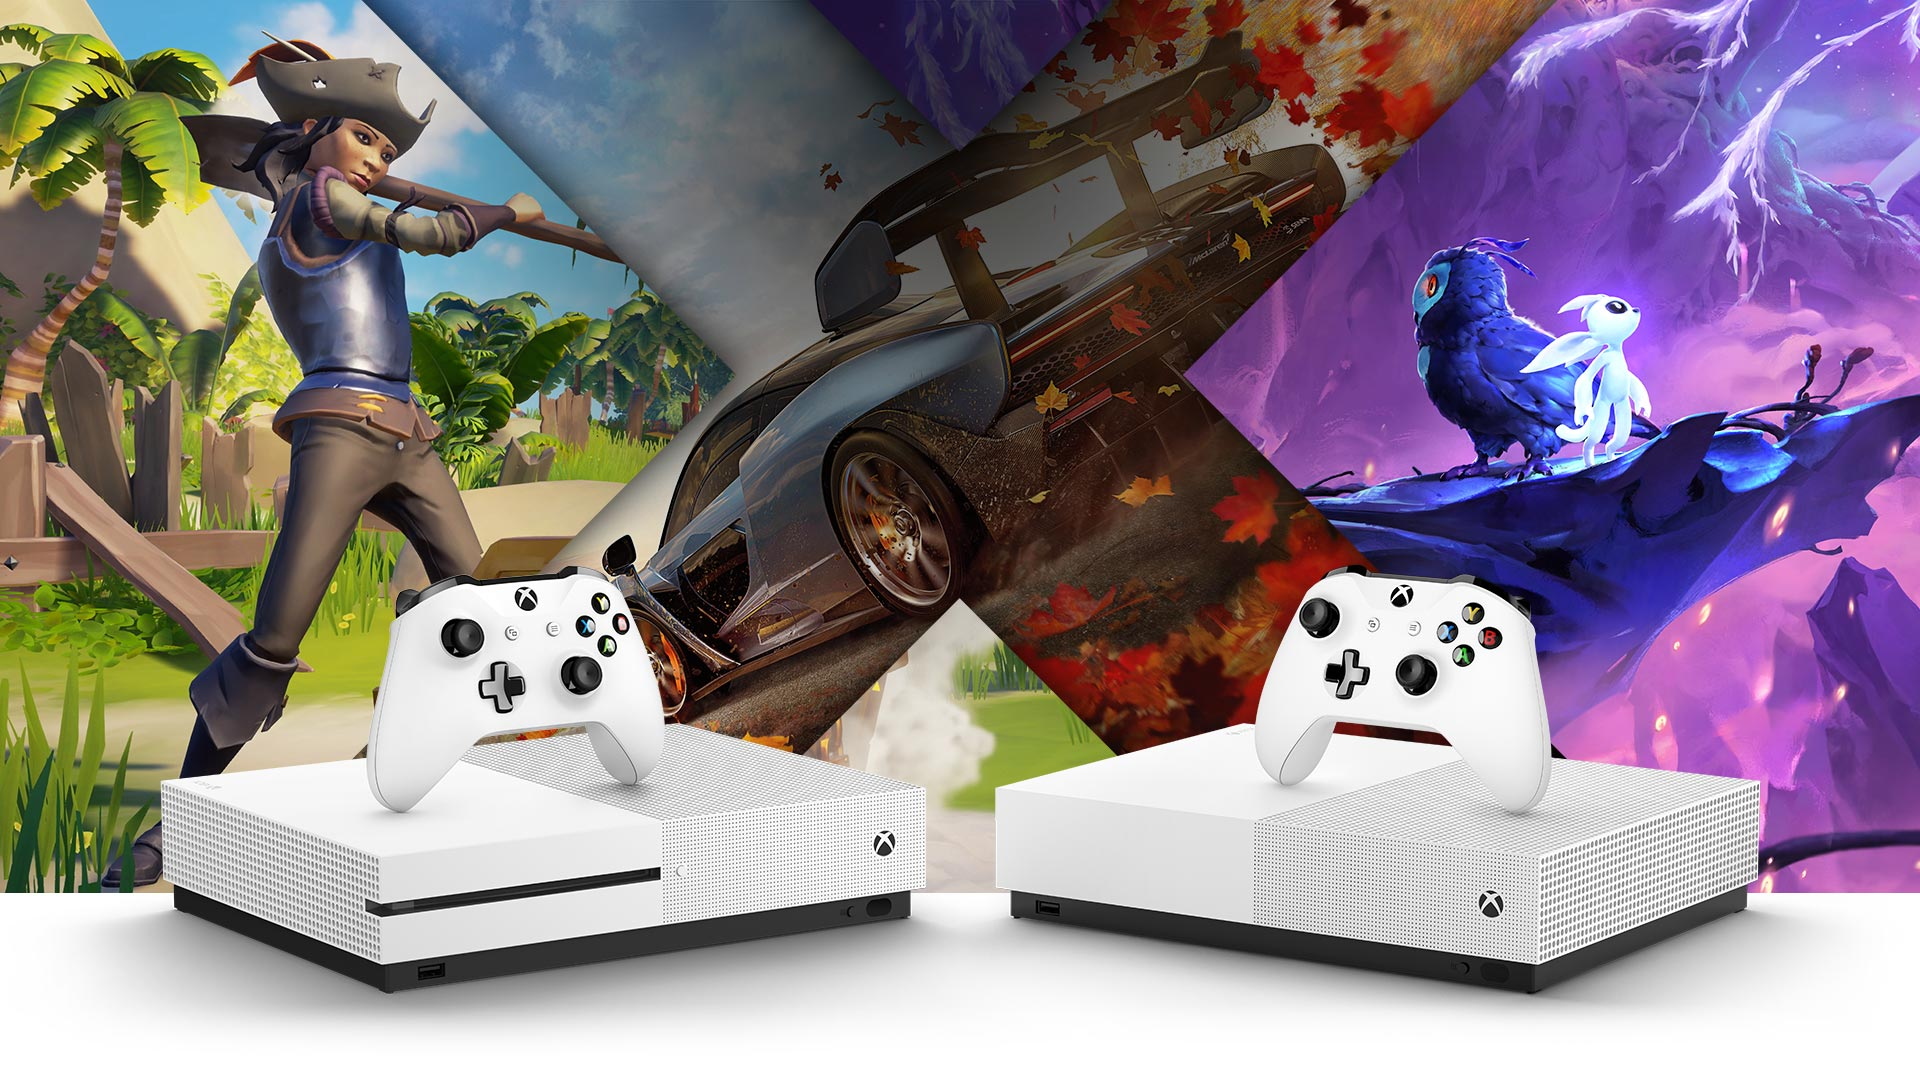 Вид спереди на Xbox One S и Xbox One S All Digital Edition в окружении иллюстраций к играм Sea of Thieves, Forza Horizon 4, Ori and the Will of Wisps